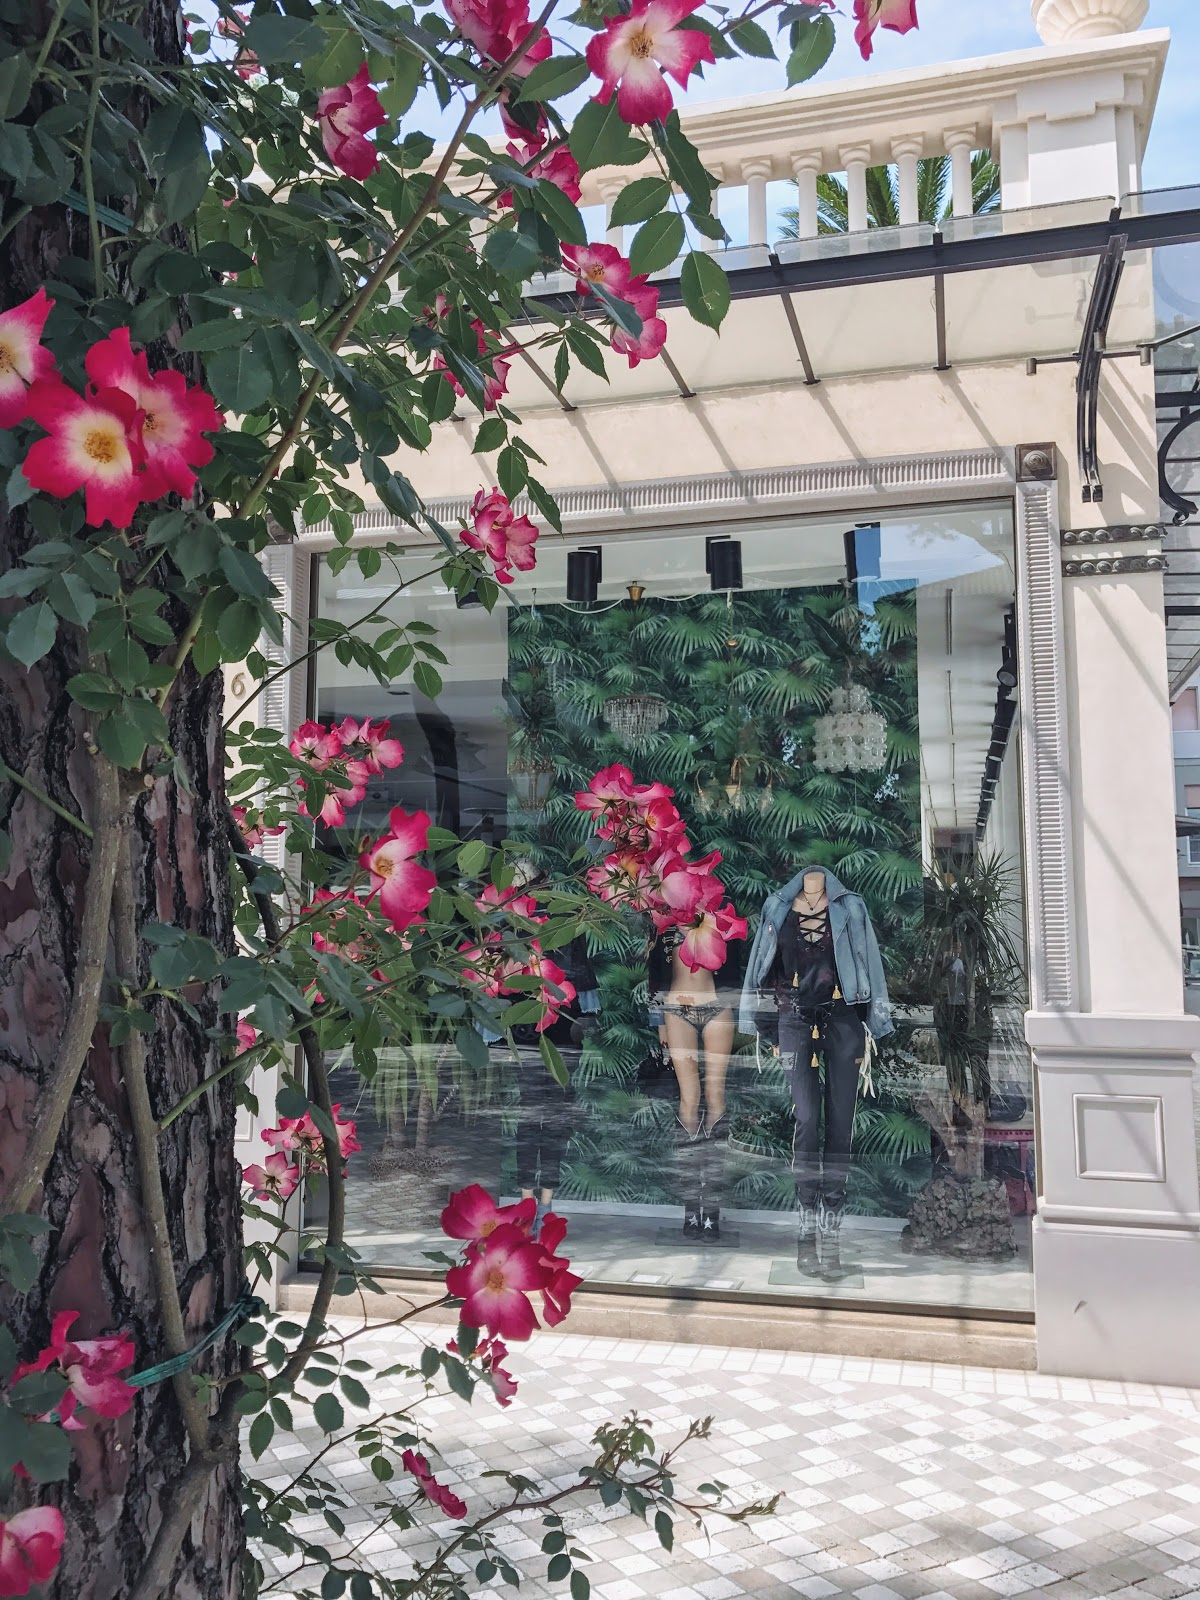 Roses in Bloom, Italy | with @coolchicstyle Instagram